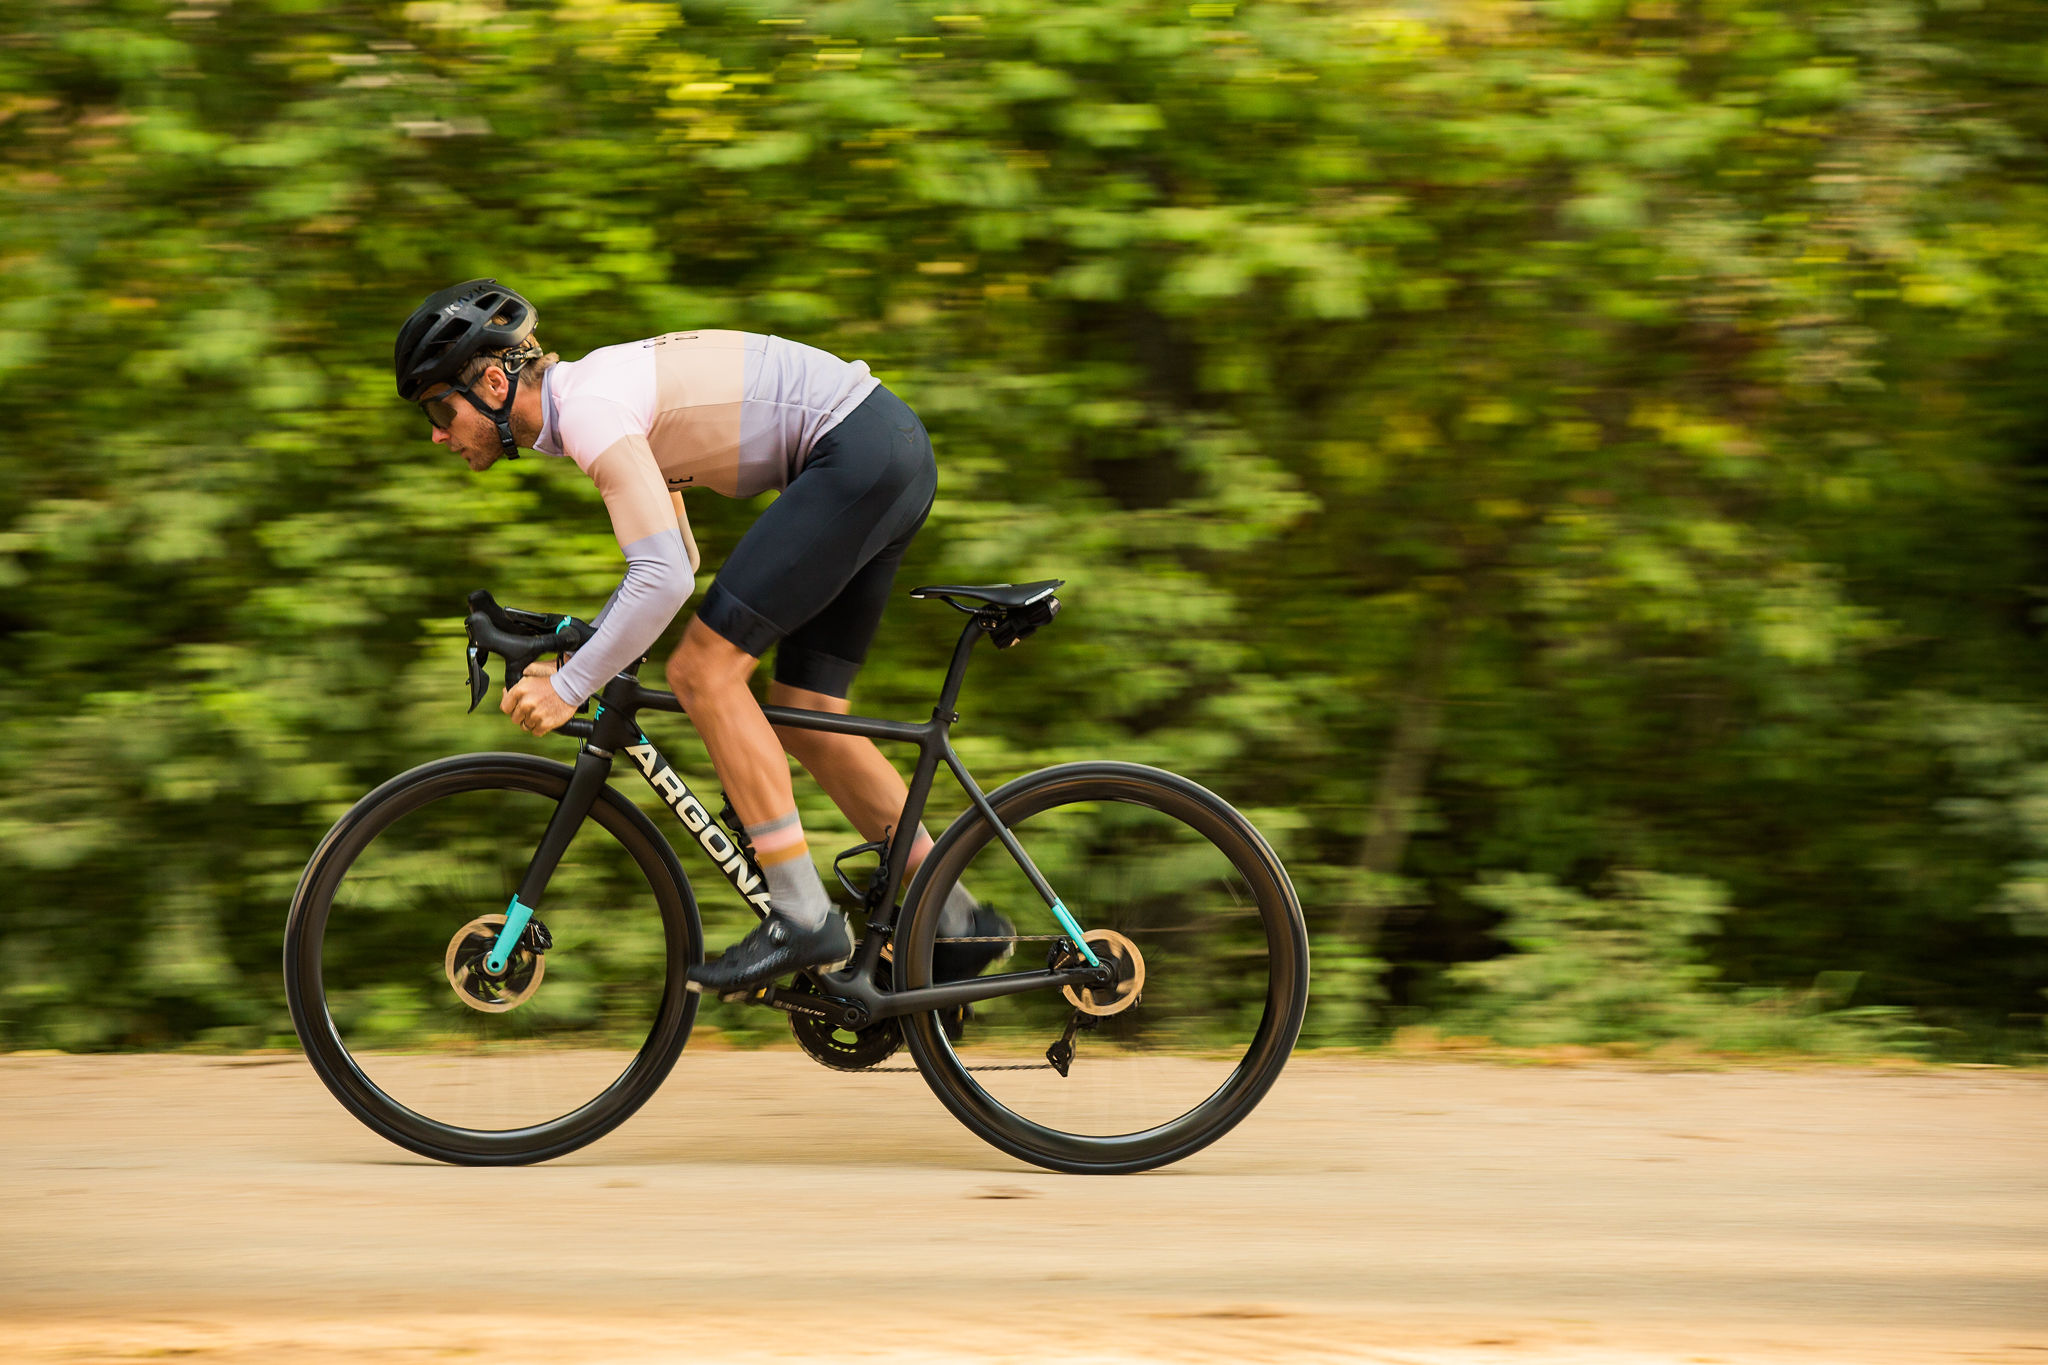 Training Camp - This five-day trip is about bagging some base miles while also doing some structured training based on the experience of years of racing at the World Tour level.